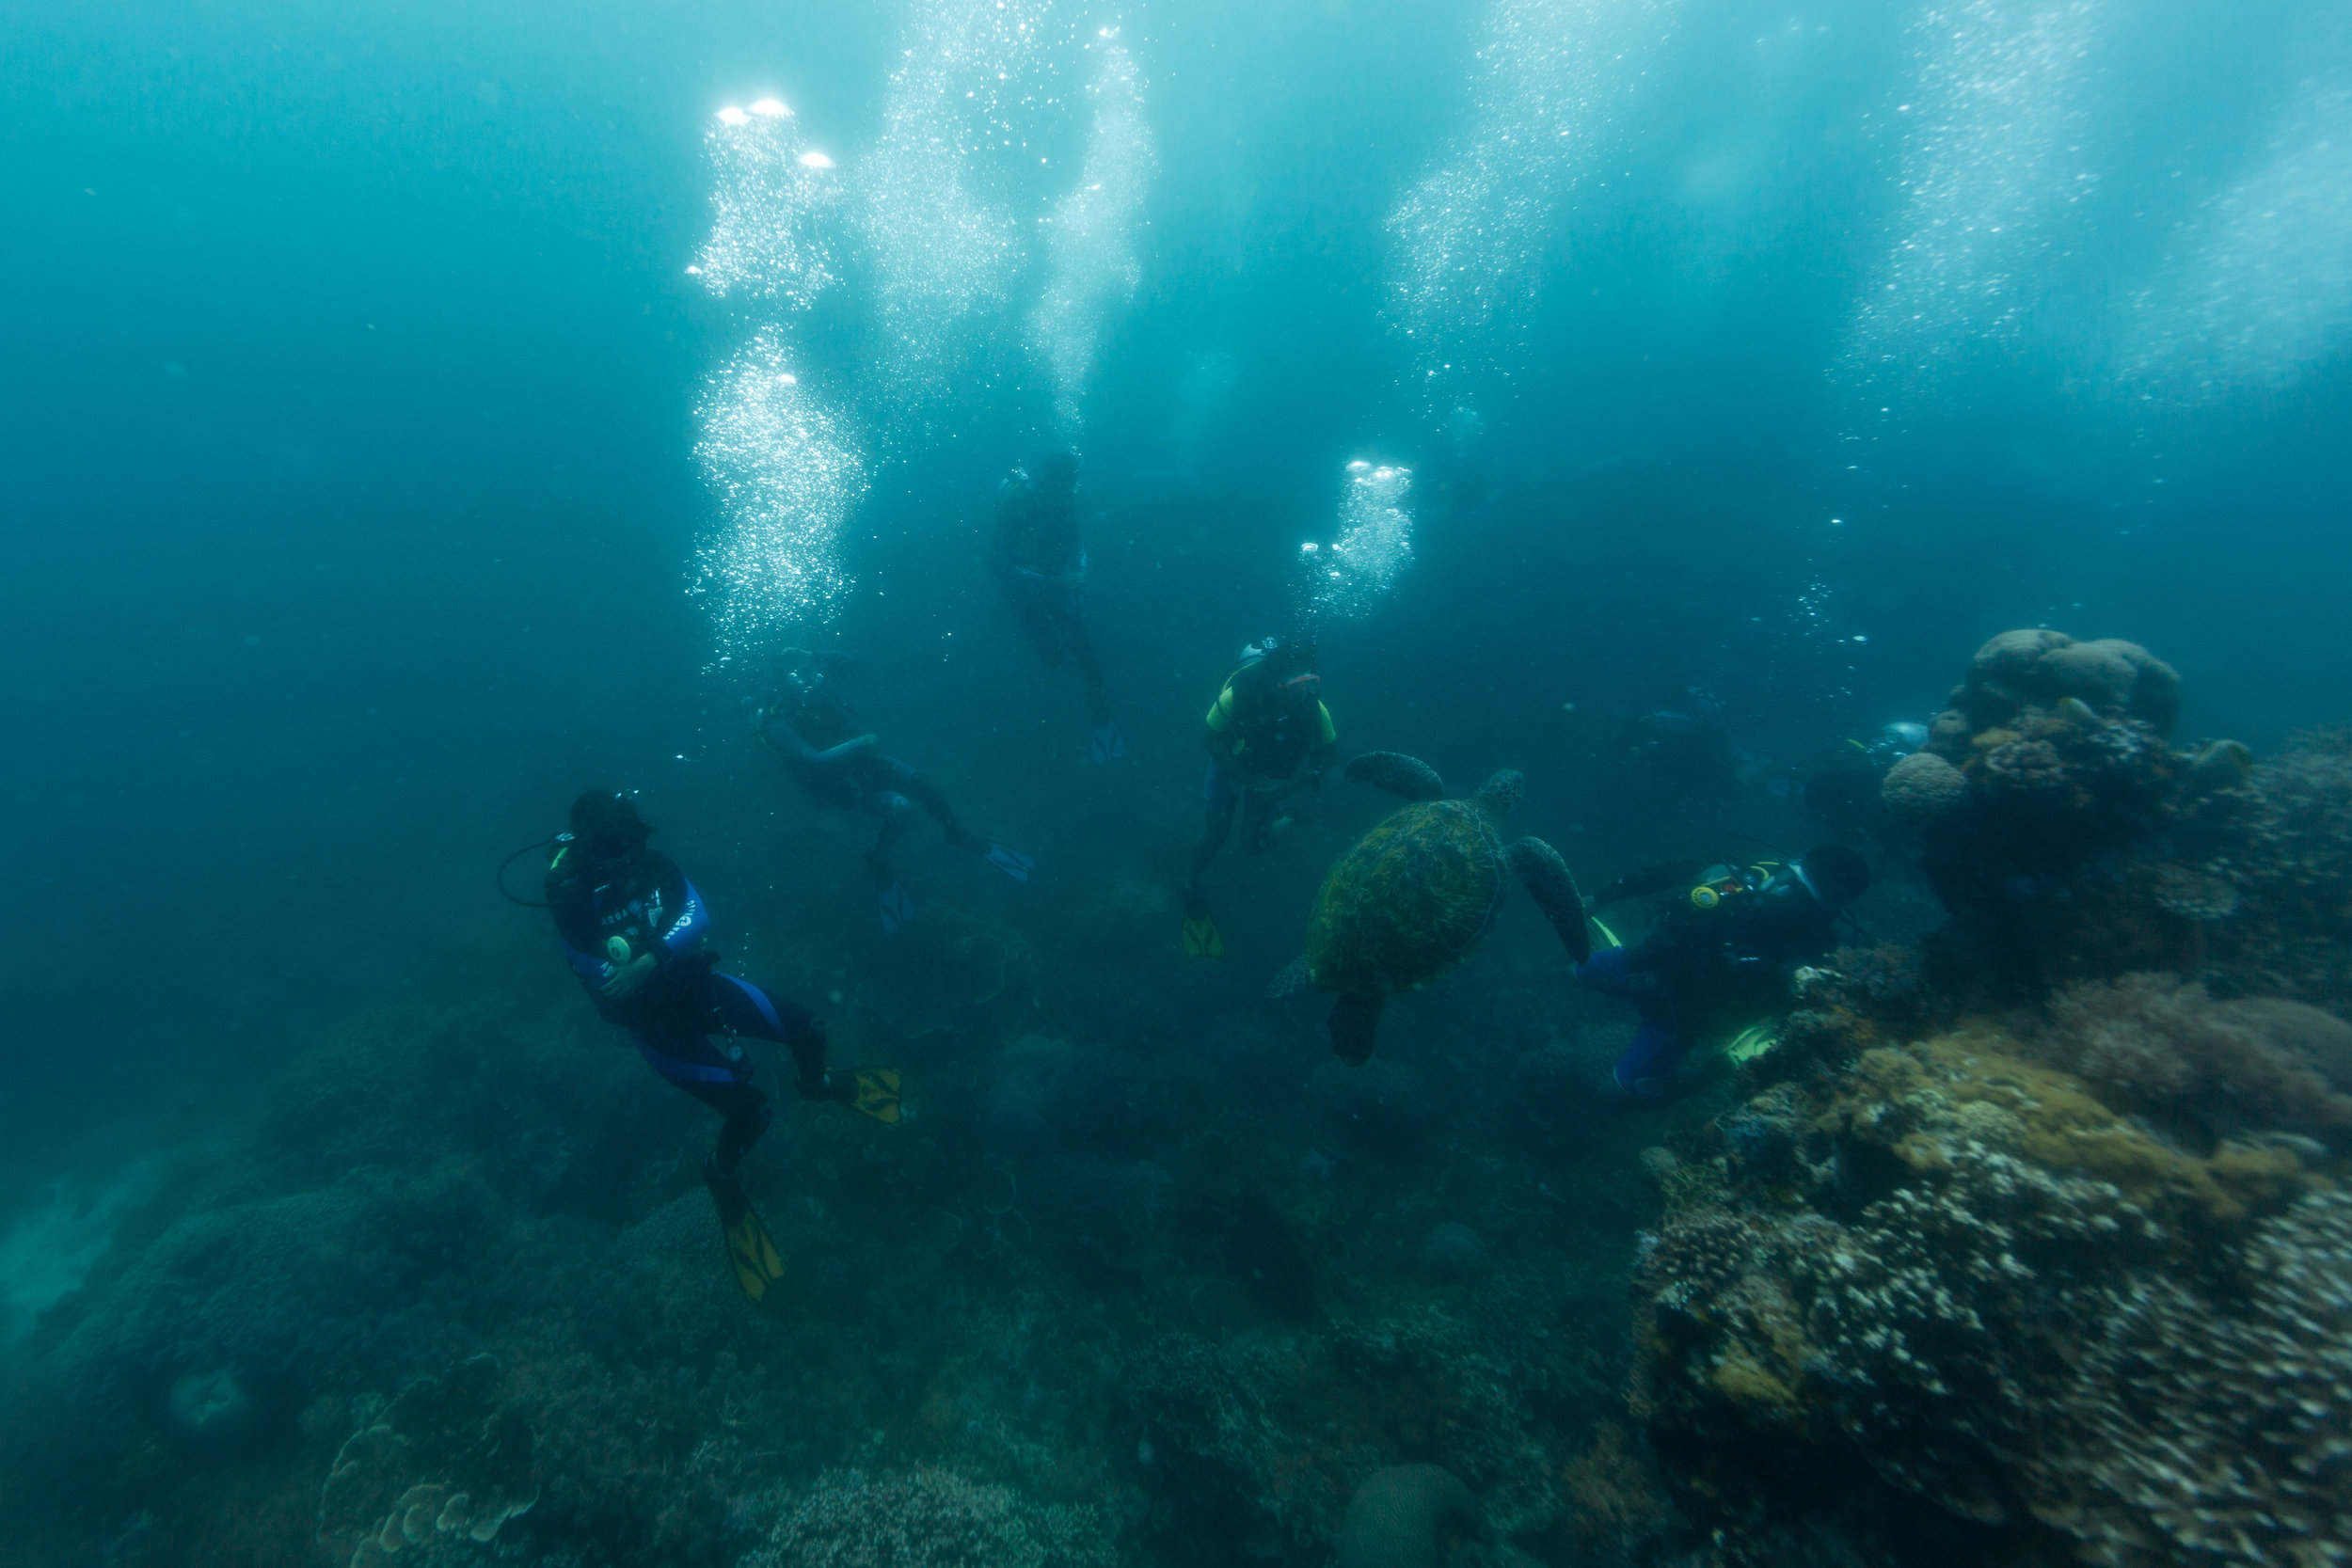 Jerome and his dive classmates on their last dive at Katipanan Reef before their graduation, April 2017